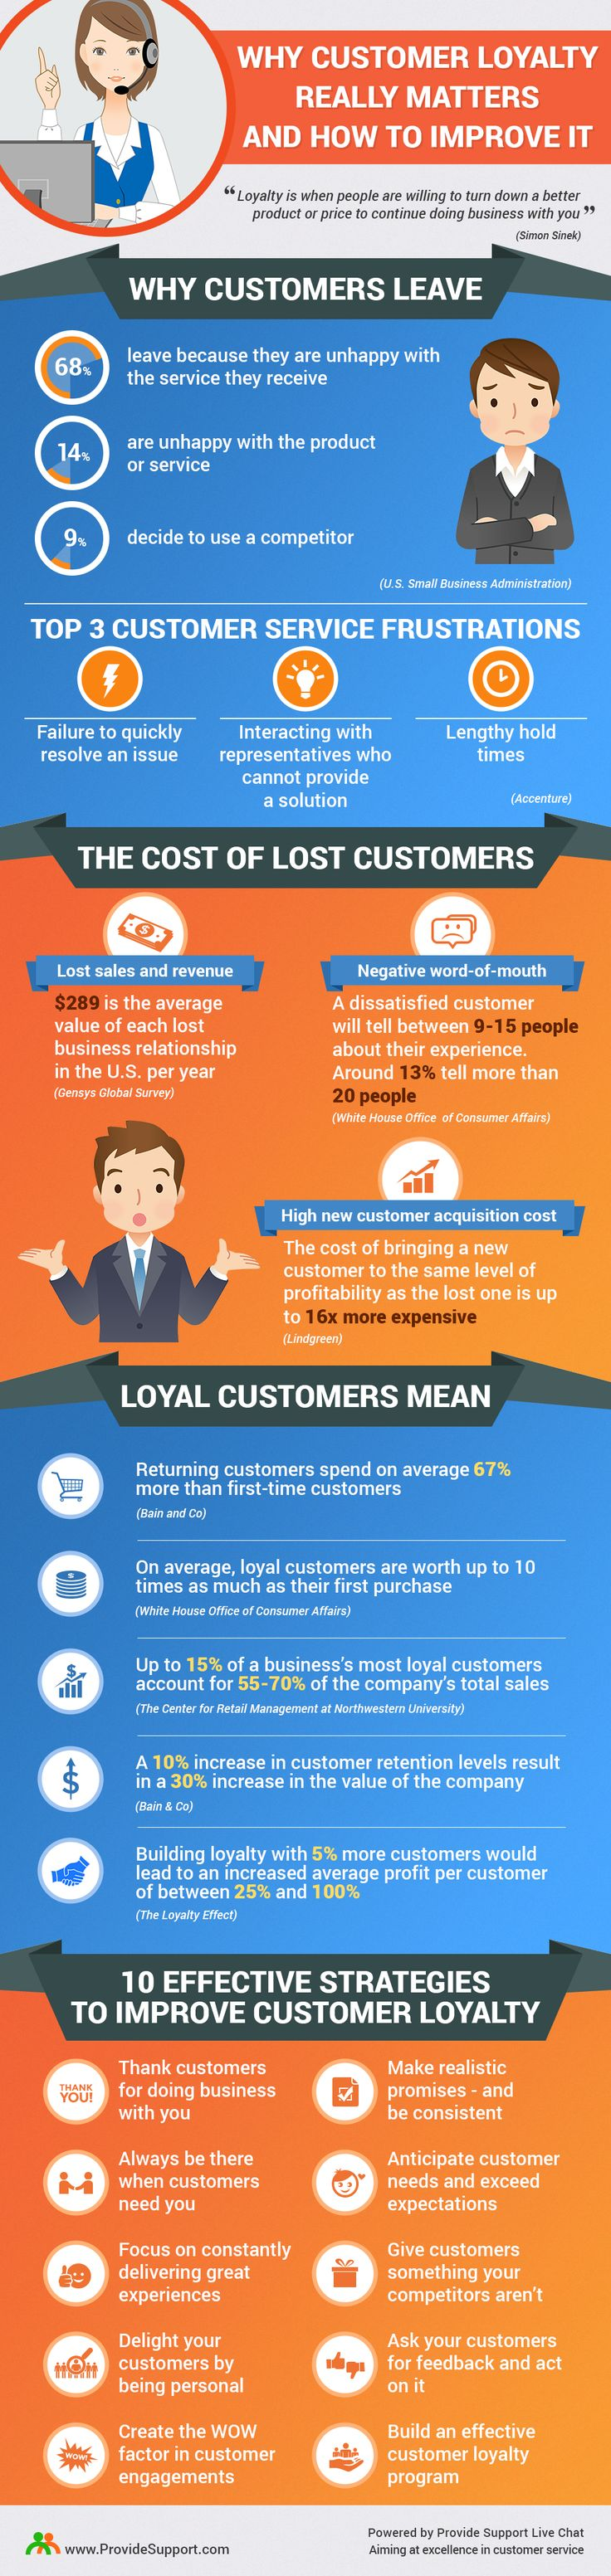 Why Customer Loyalty Really Matters and How to Improve It (Infographic): http://www.providesupport.com/blog/why-customer-loyalty-really-matters-infographic/ #customerloyalty #customerexperience